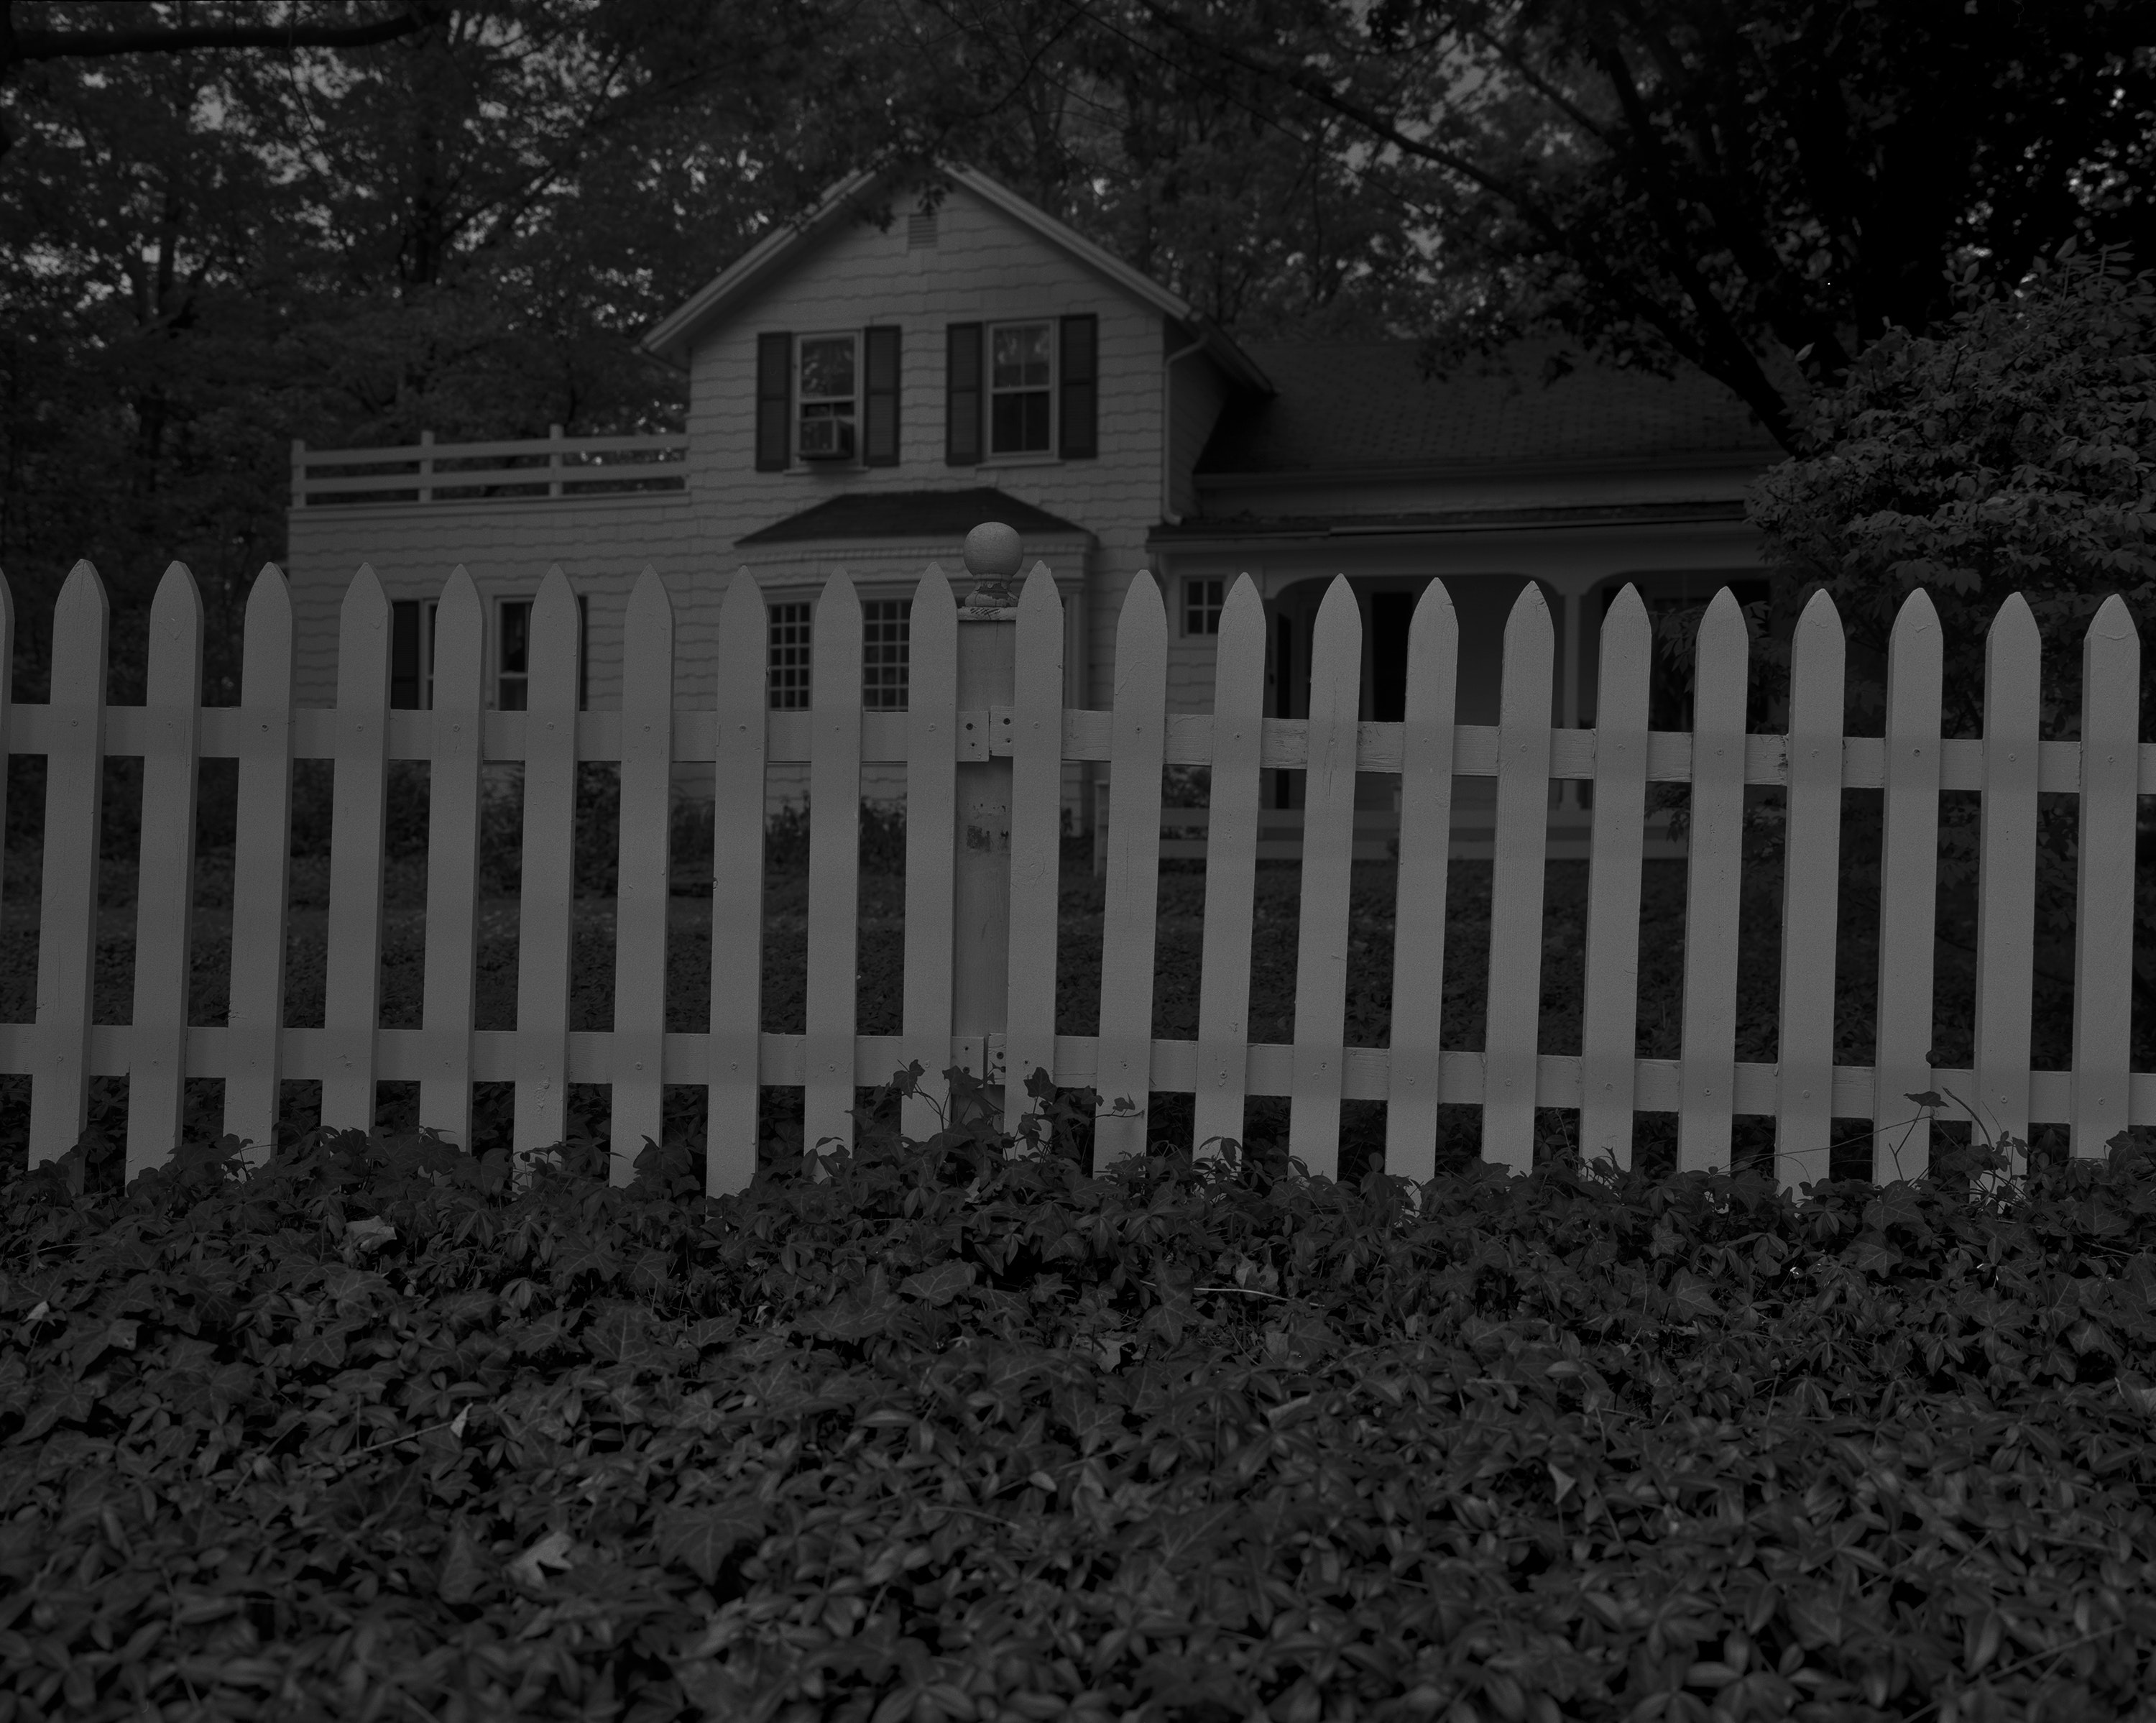 A black-and-white photograph shows a white house guarded by a white picket fence at night.